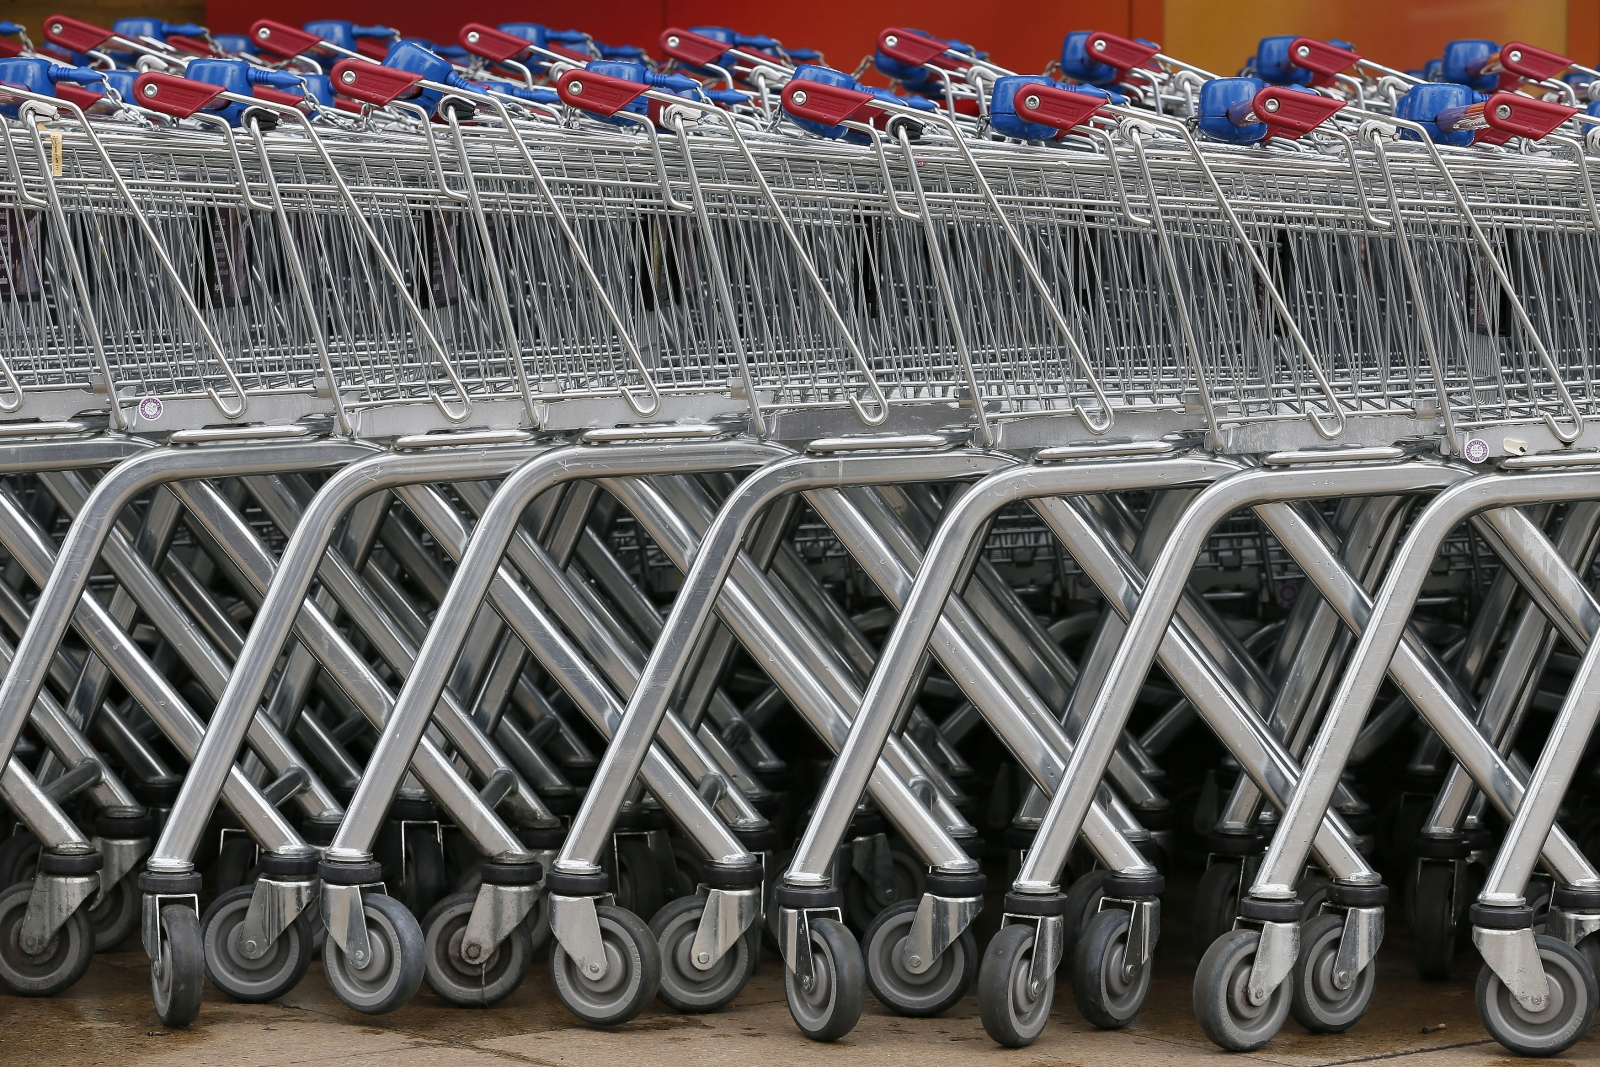 Shopping trolleys are seen parked at a Sainsbury's store in London May 8, 2013.